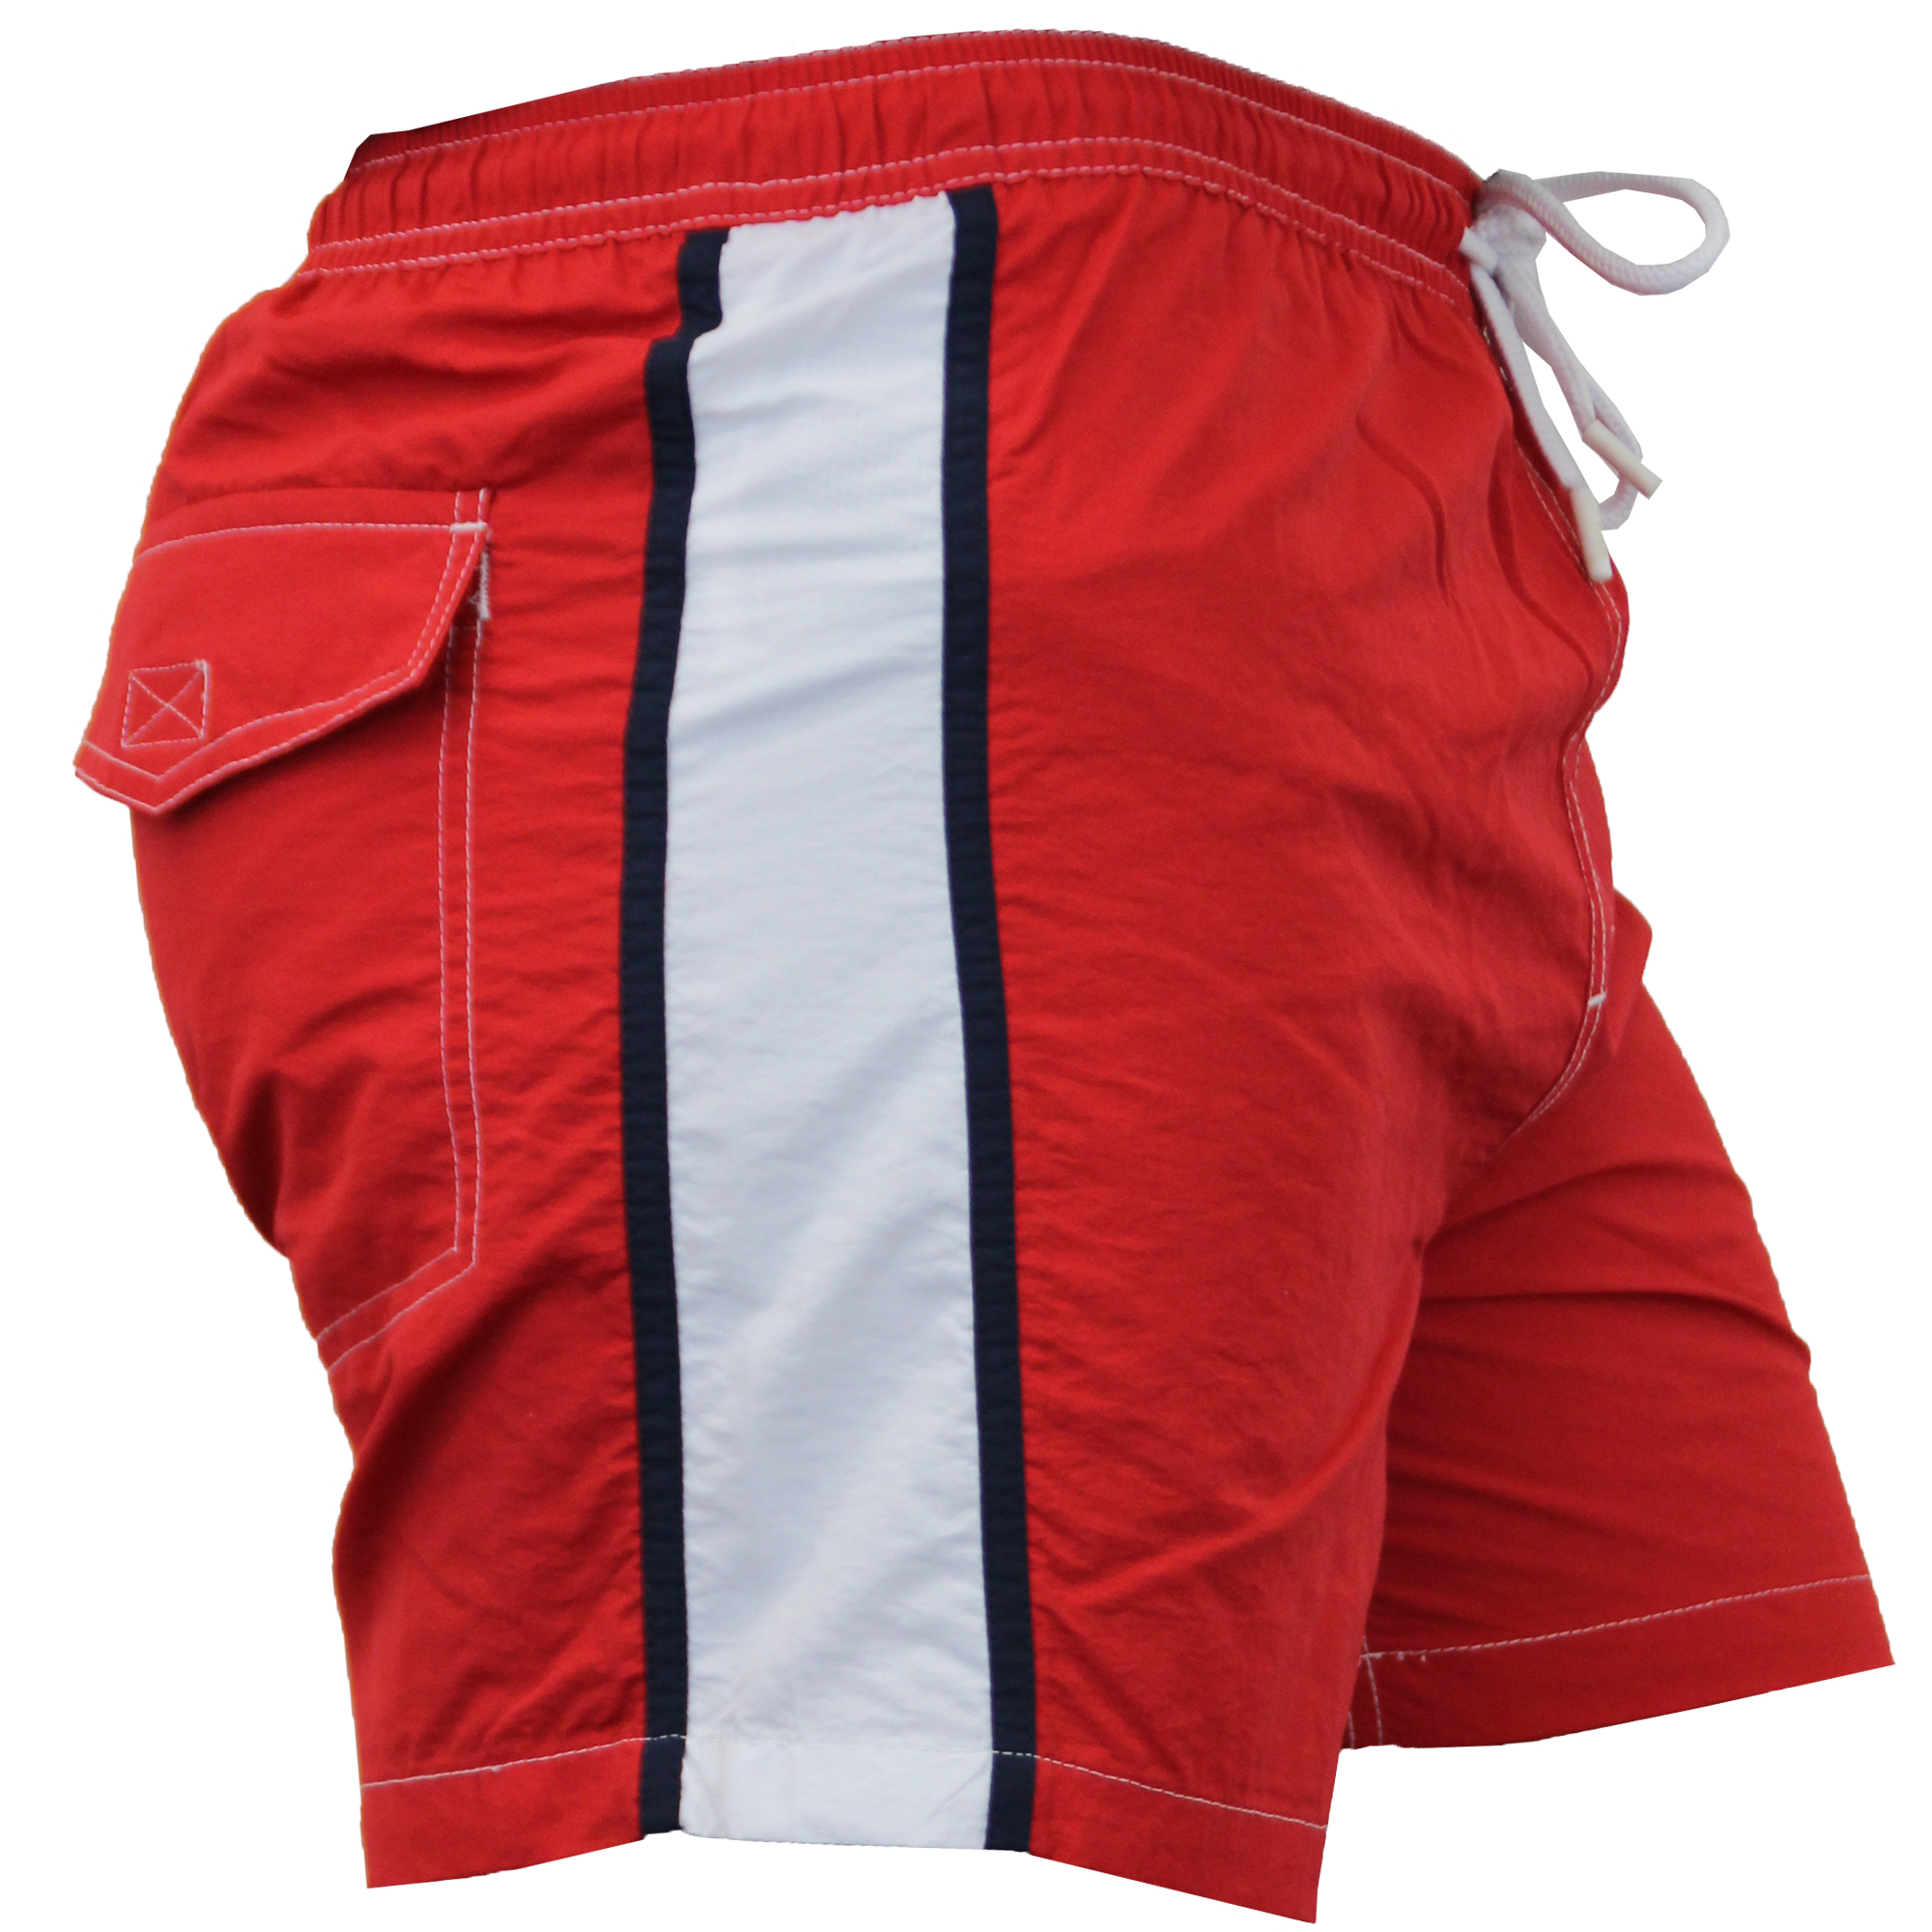 Mens-Swim-Board-Shorts-By-Brave-Soul-Mesh-Lined-New thumbnail 52